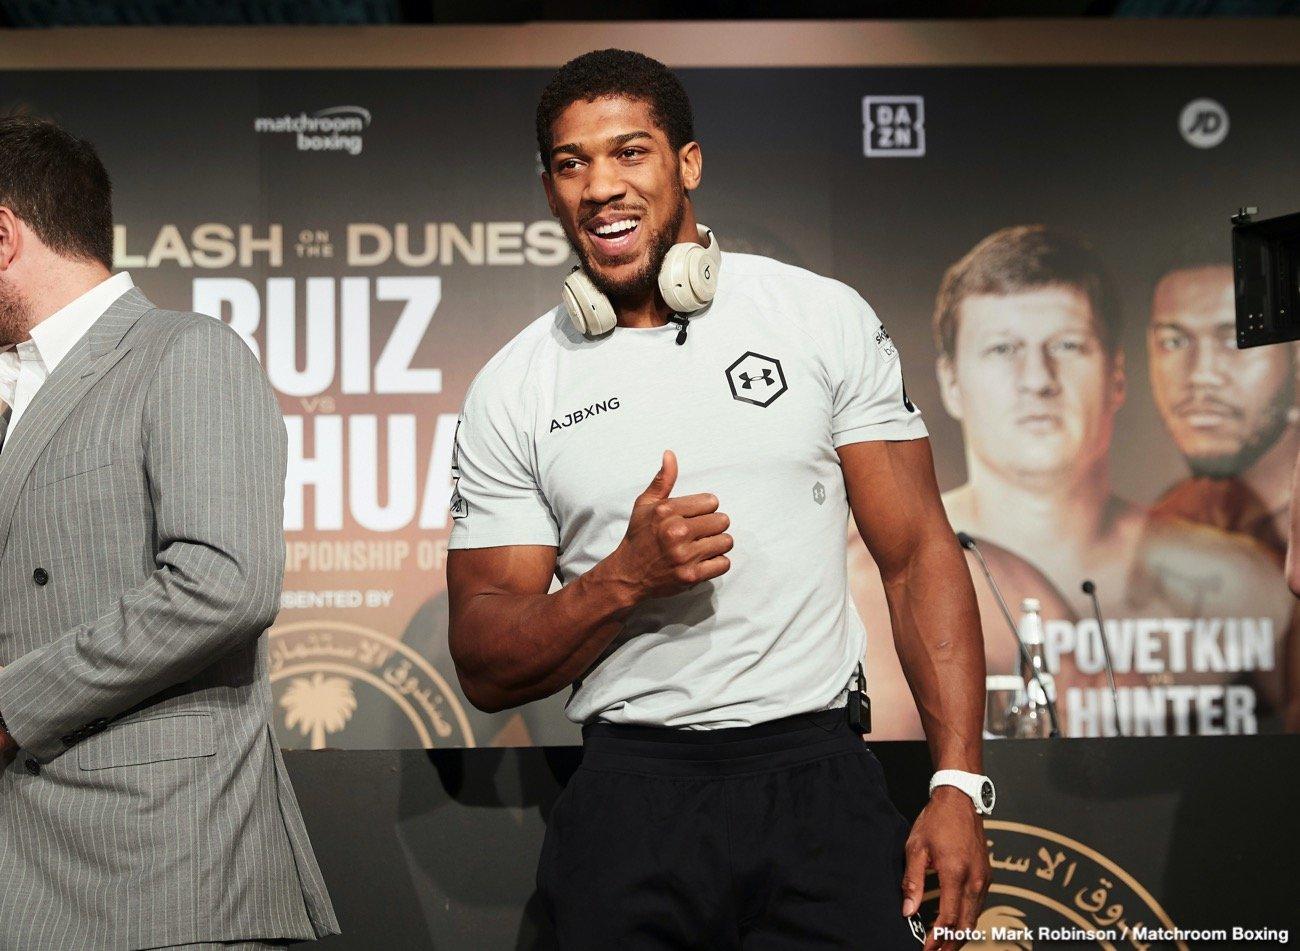 Anthony Joshua, Mike Tyson - IBF/WBA/WBO heavyweight champion Anthony Joshua has no problems with former champion Mike Tyson putting out videos and fighting other old-timers like himself. Still, he says he shouldn't even consider coming back to take on the young lions in the division. That's a bridge too war for Tyson, according to Joshua.